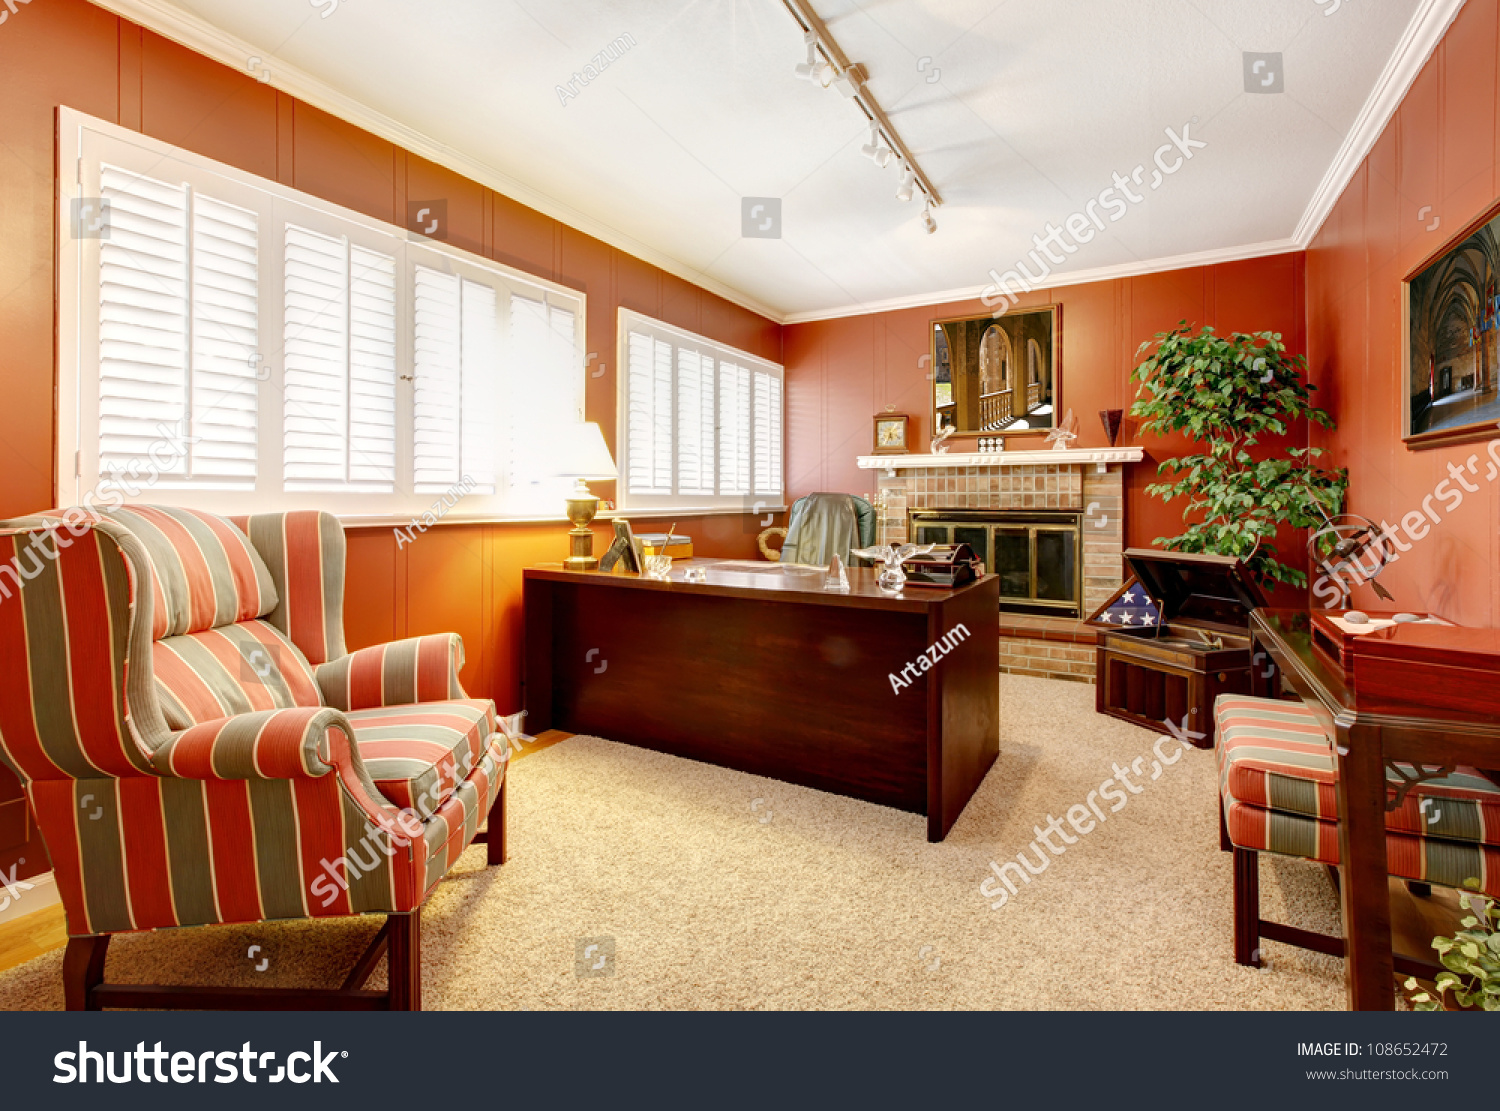 Elegant Living Room Interior With Piano Fireplace And Antique Sofa Stock Photo 108652472